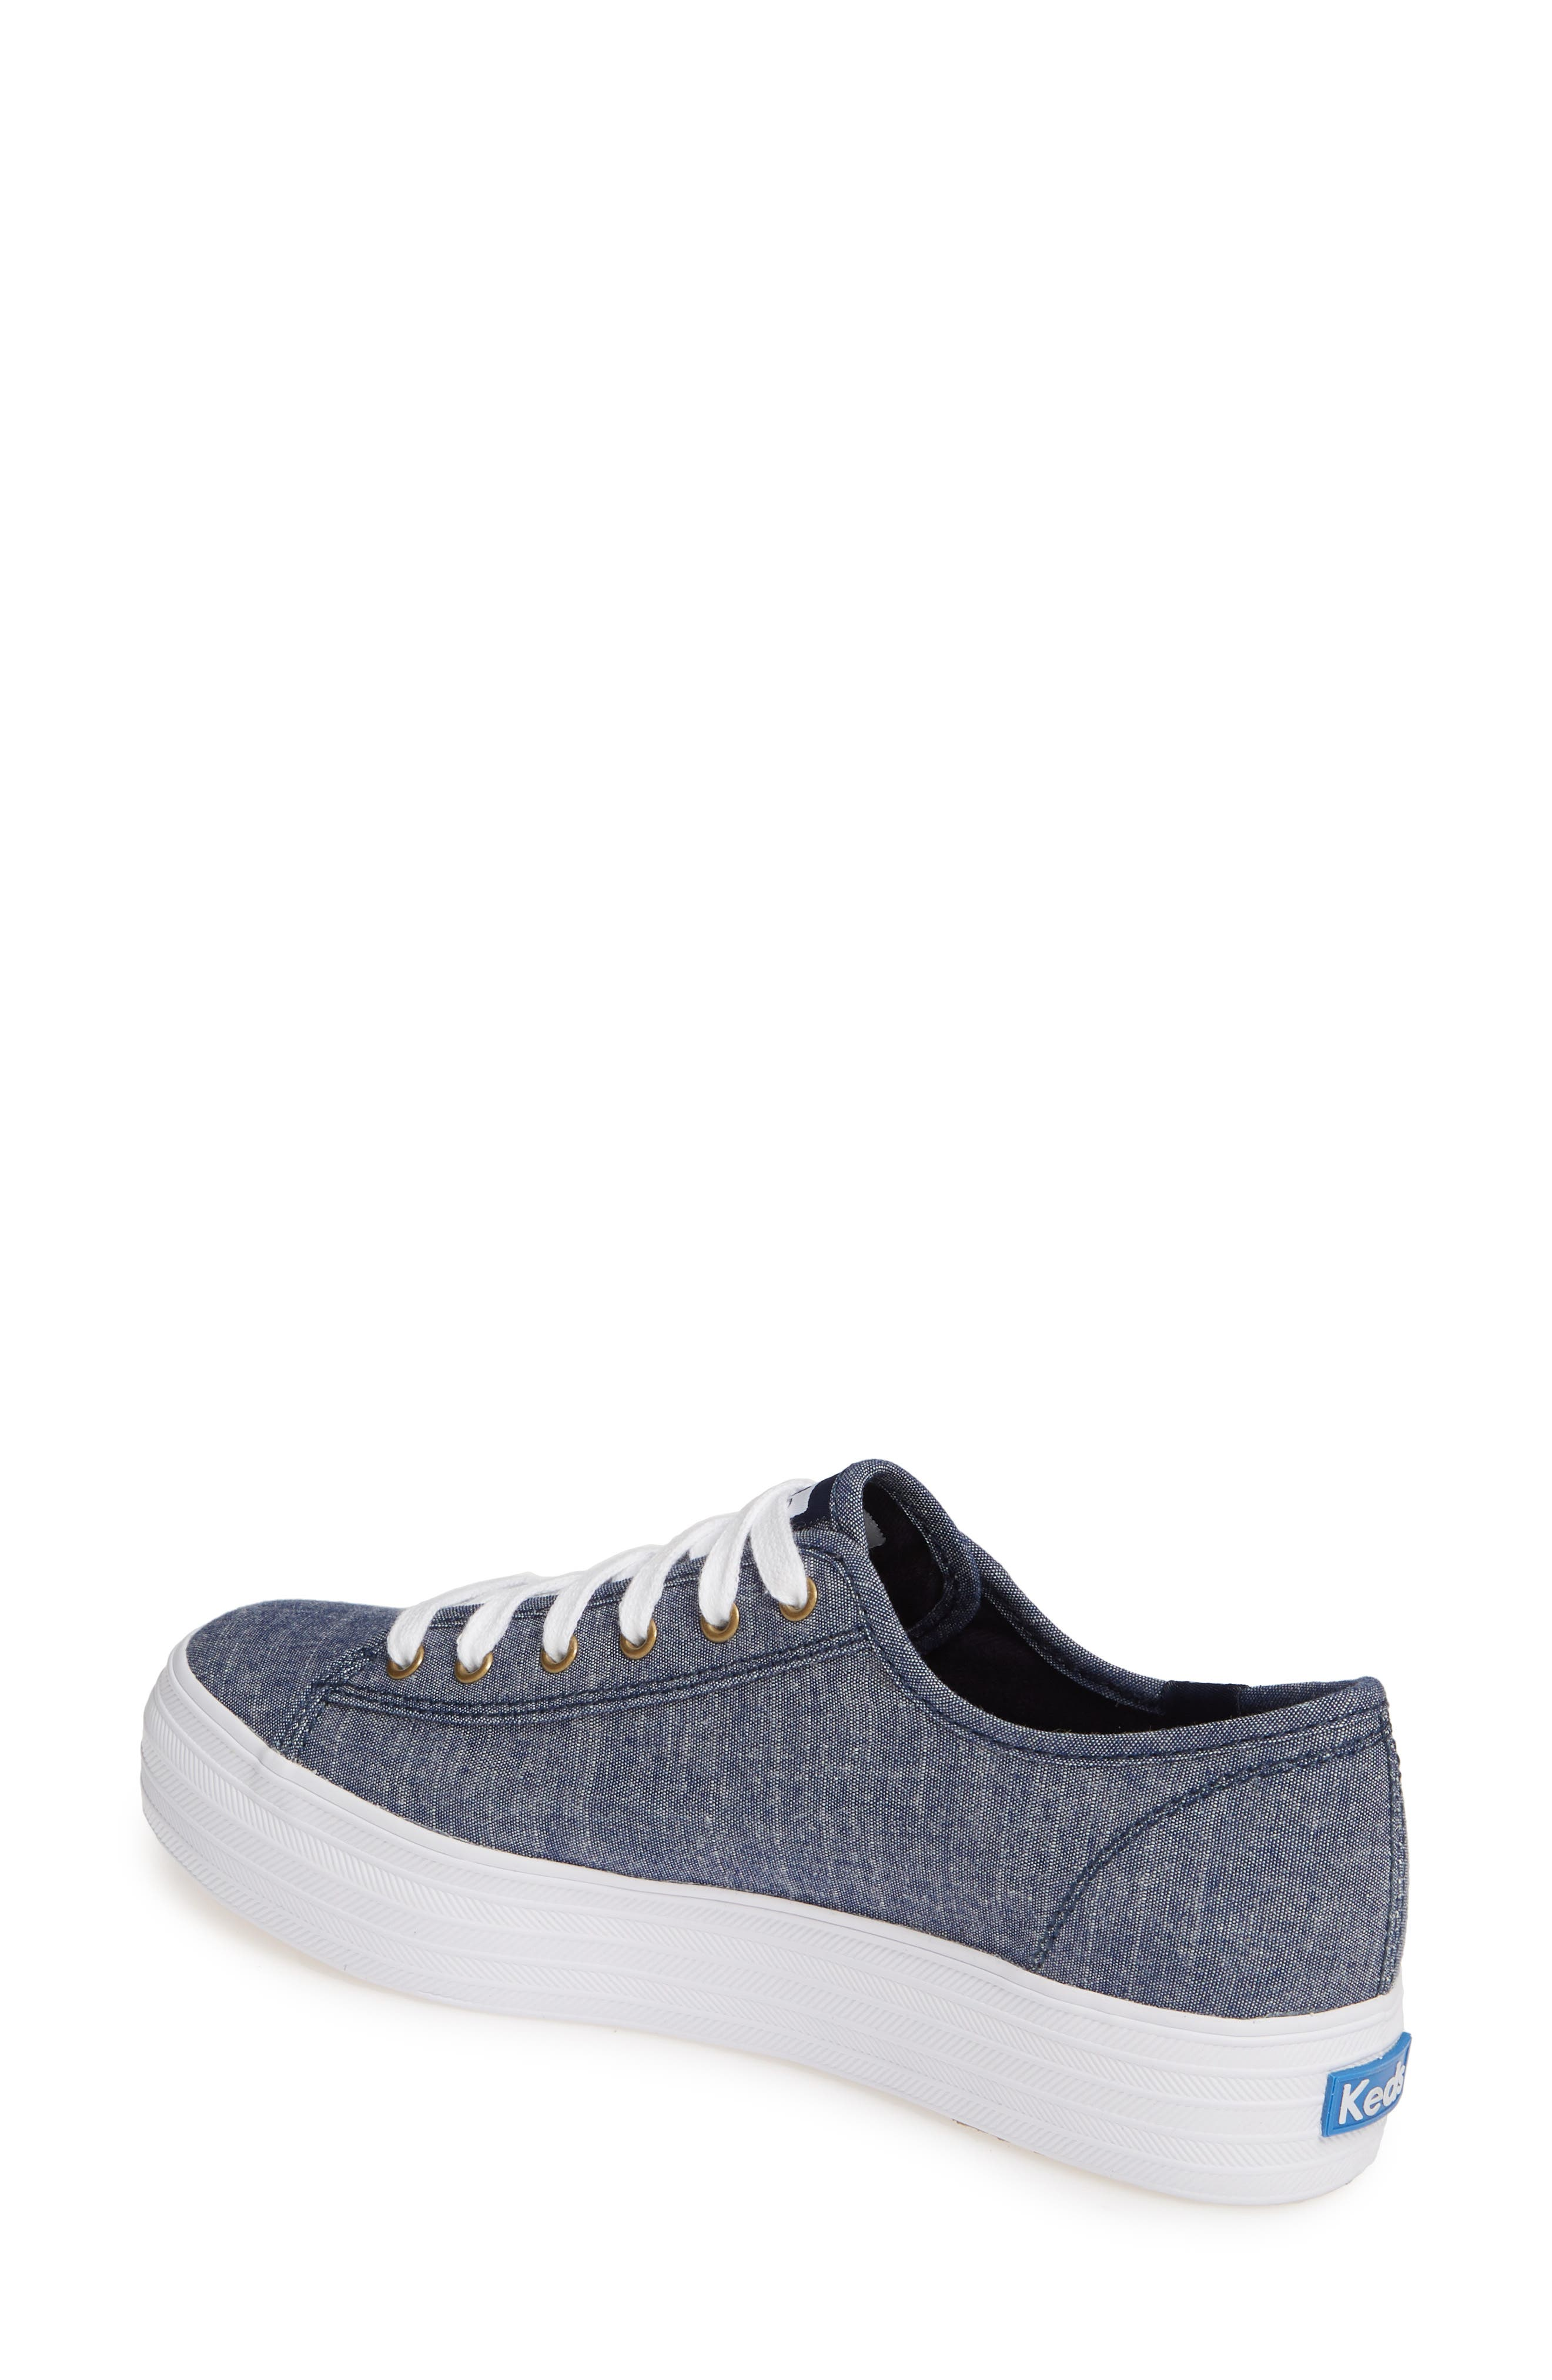 KEDS<SUP>®</SUP>, Triple Kick Platform Chambray Sneaker, Alternate thumbnail 2, color, BLUE